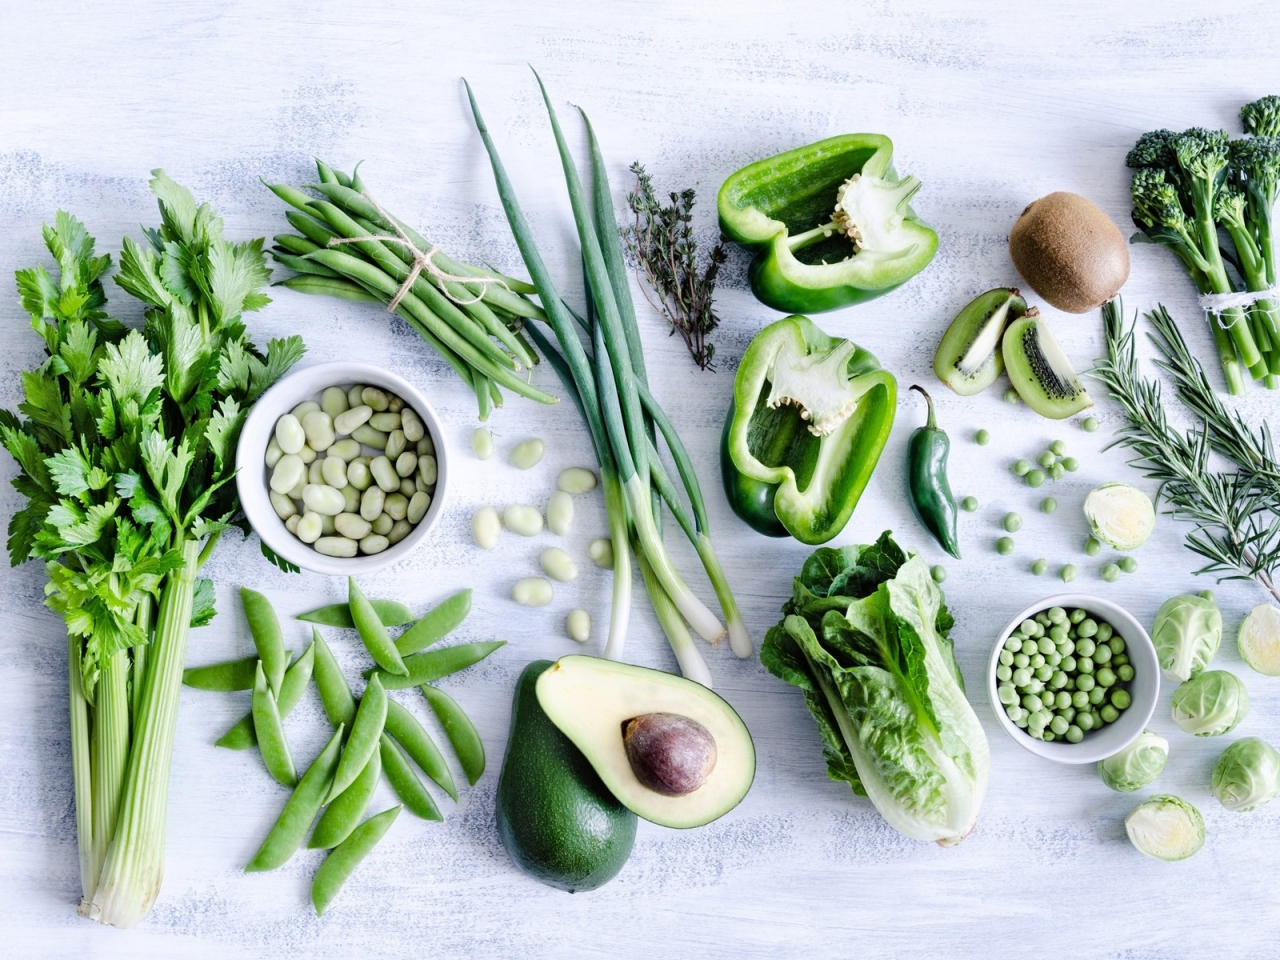 Green Vegetables for 1280 x 960 resolution